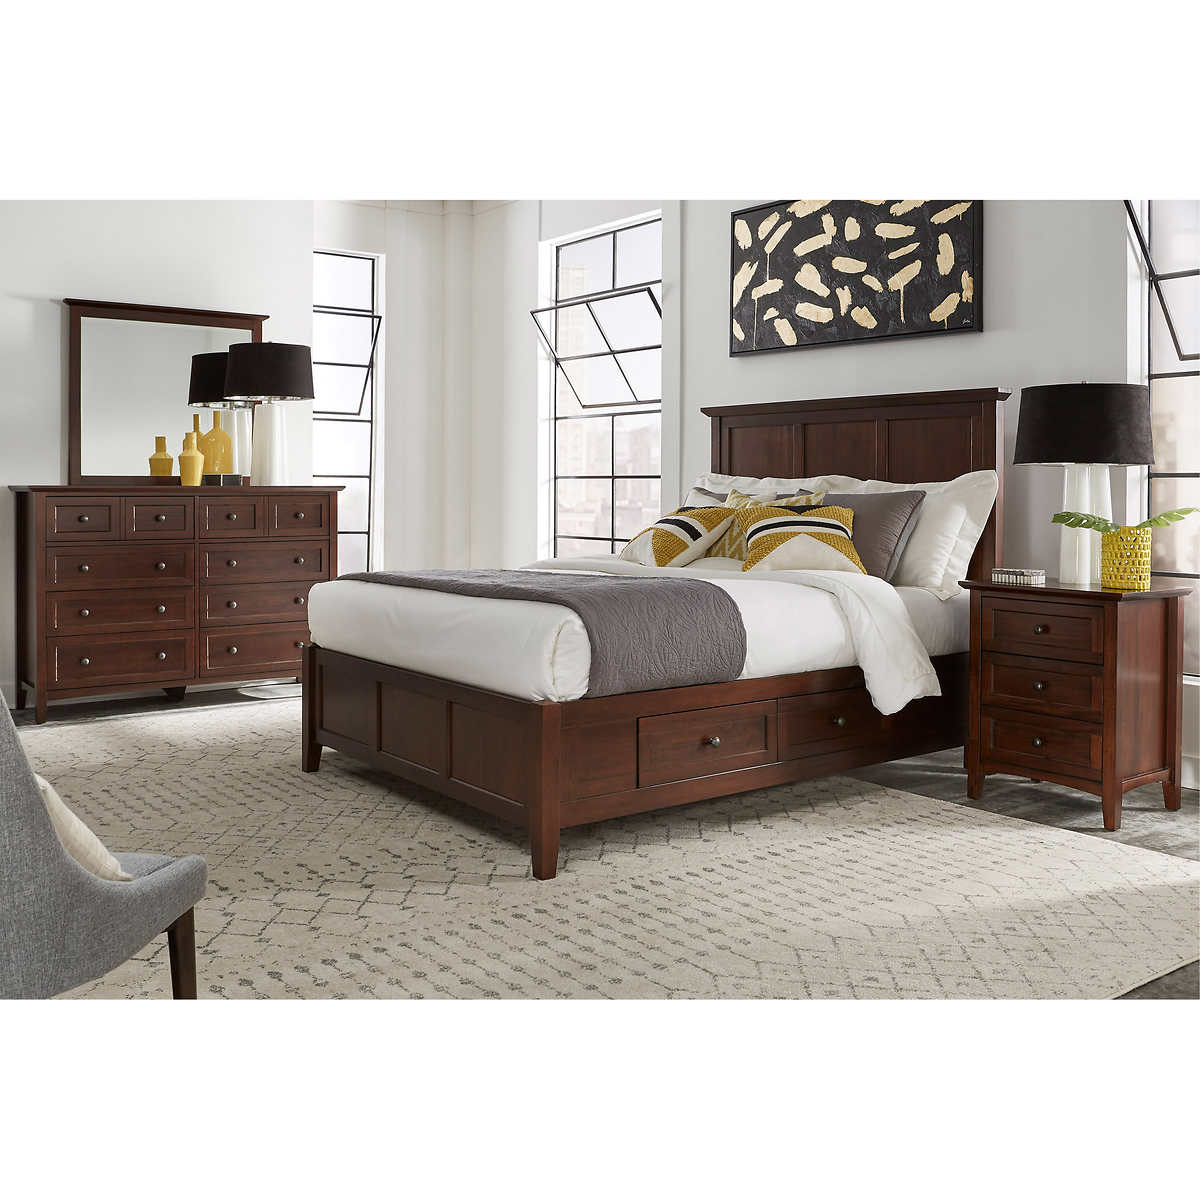 Tremendous Ponderra 5 Piece Queen Storage Bedroom Set Home Interior And Landscaping Palasignezvosmurscom